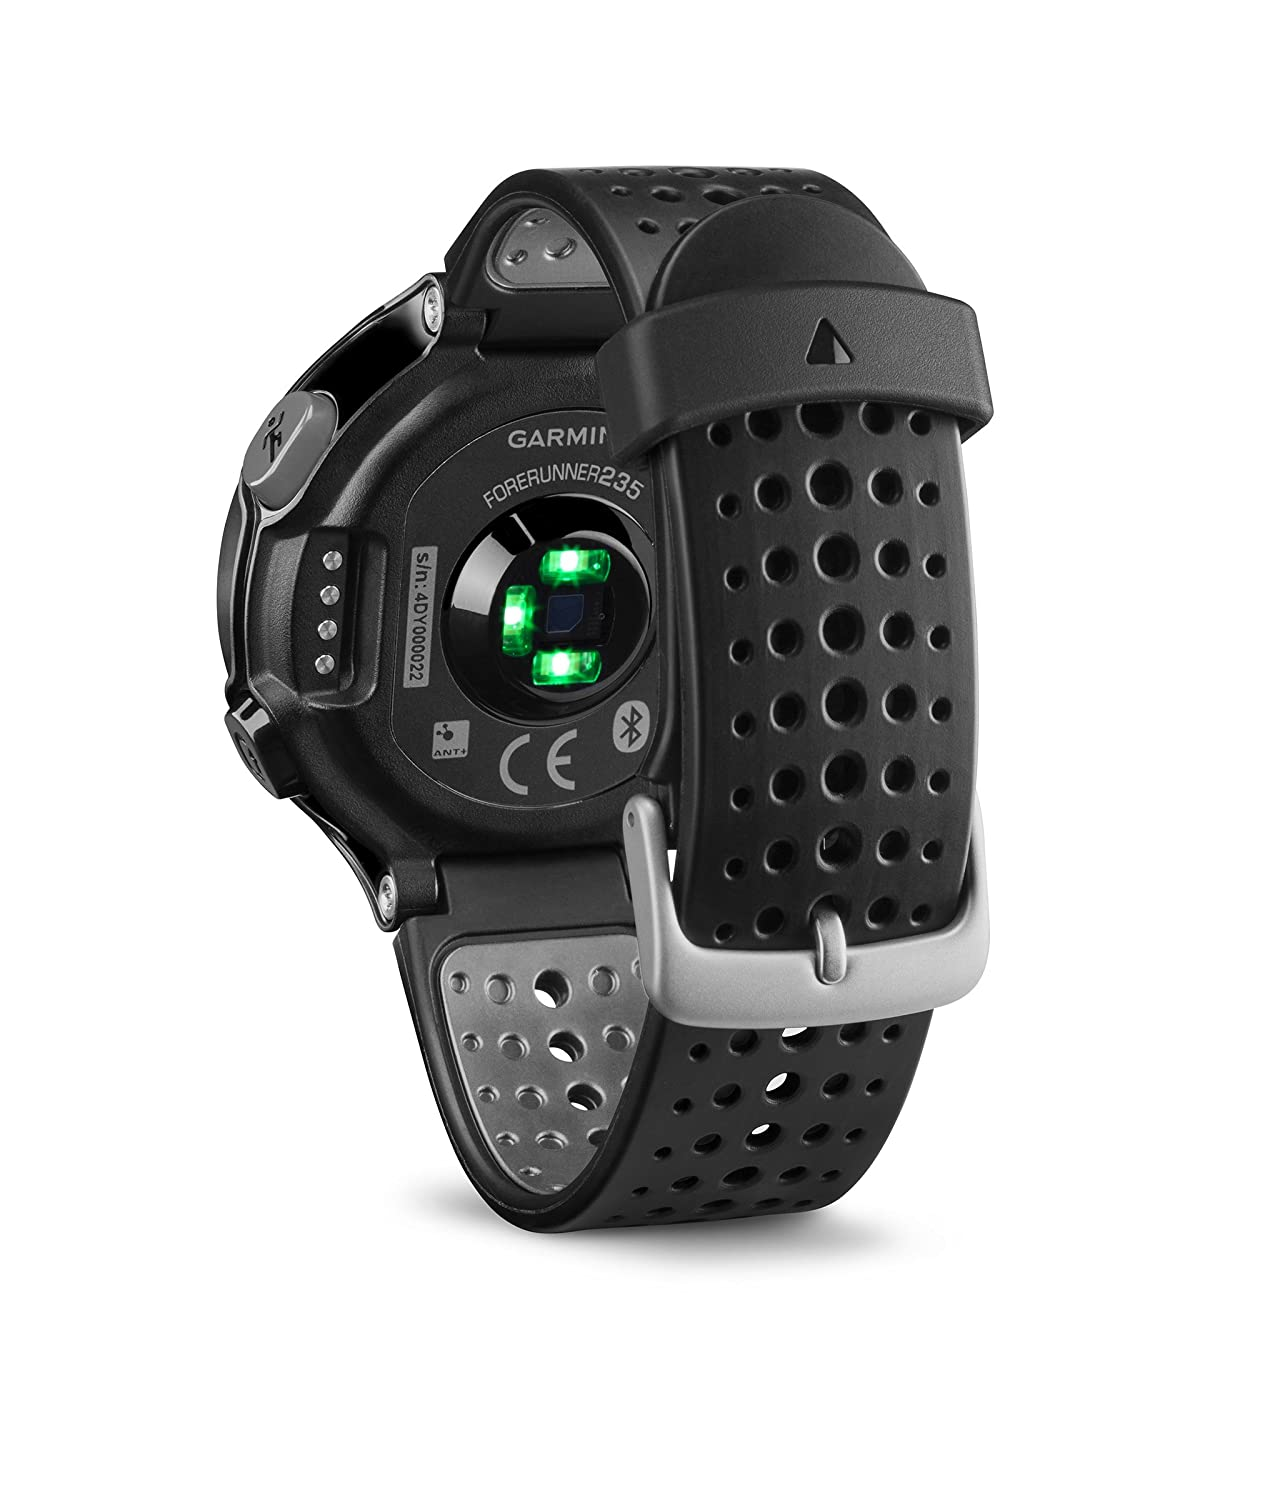 Best sports smart watch with gps for adults with heart rate monitor